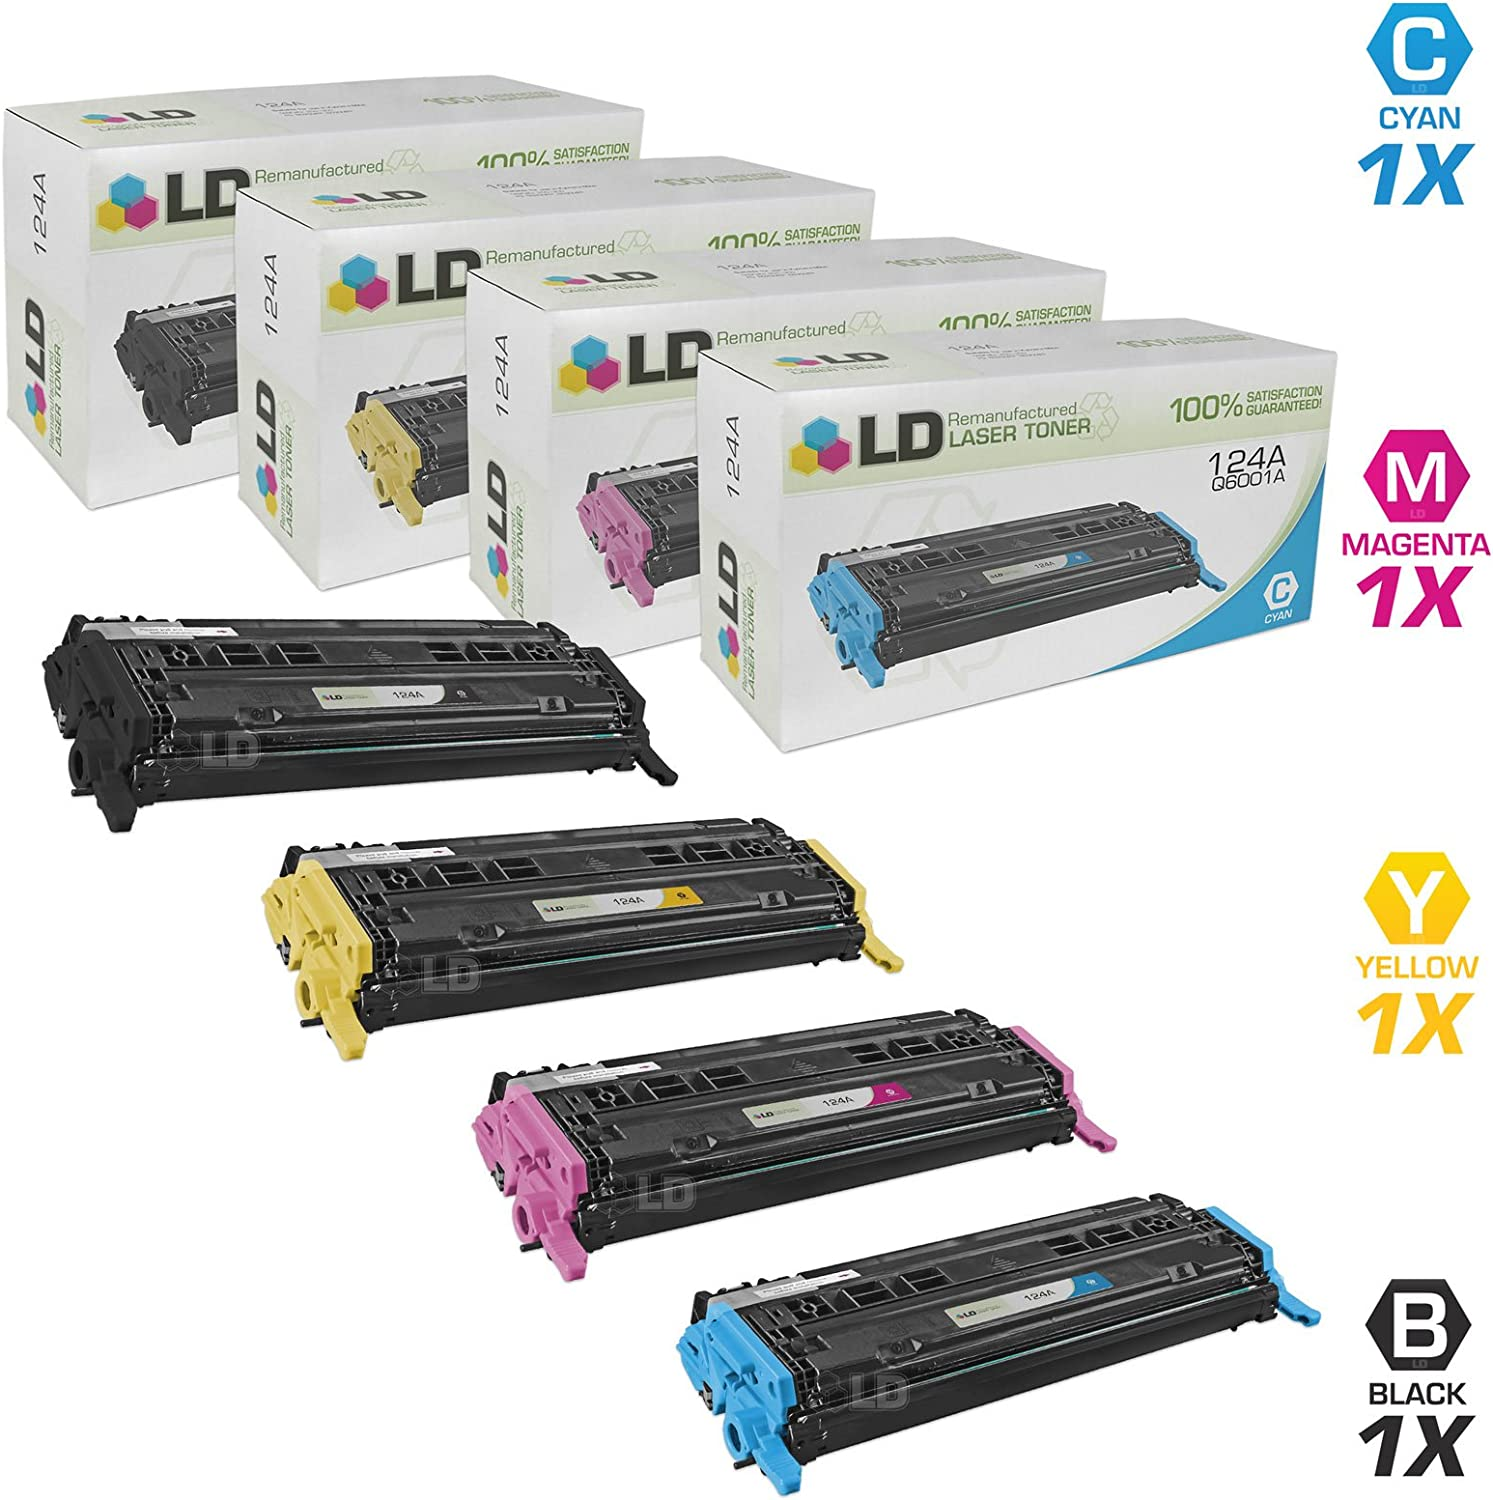 LD Remanufactured Toner Cartridge Replacements for HP 124A (1 Black, 1 Cyan, 1 Magenta, 1 Yellow, 4-Pack)